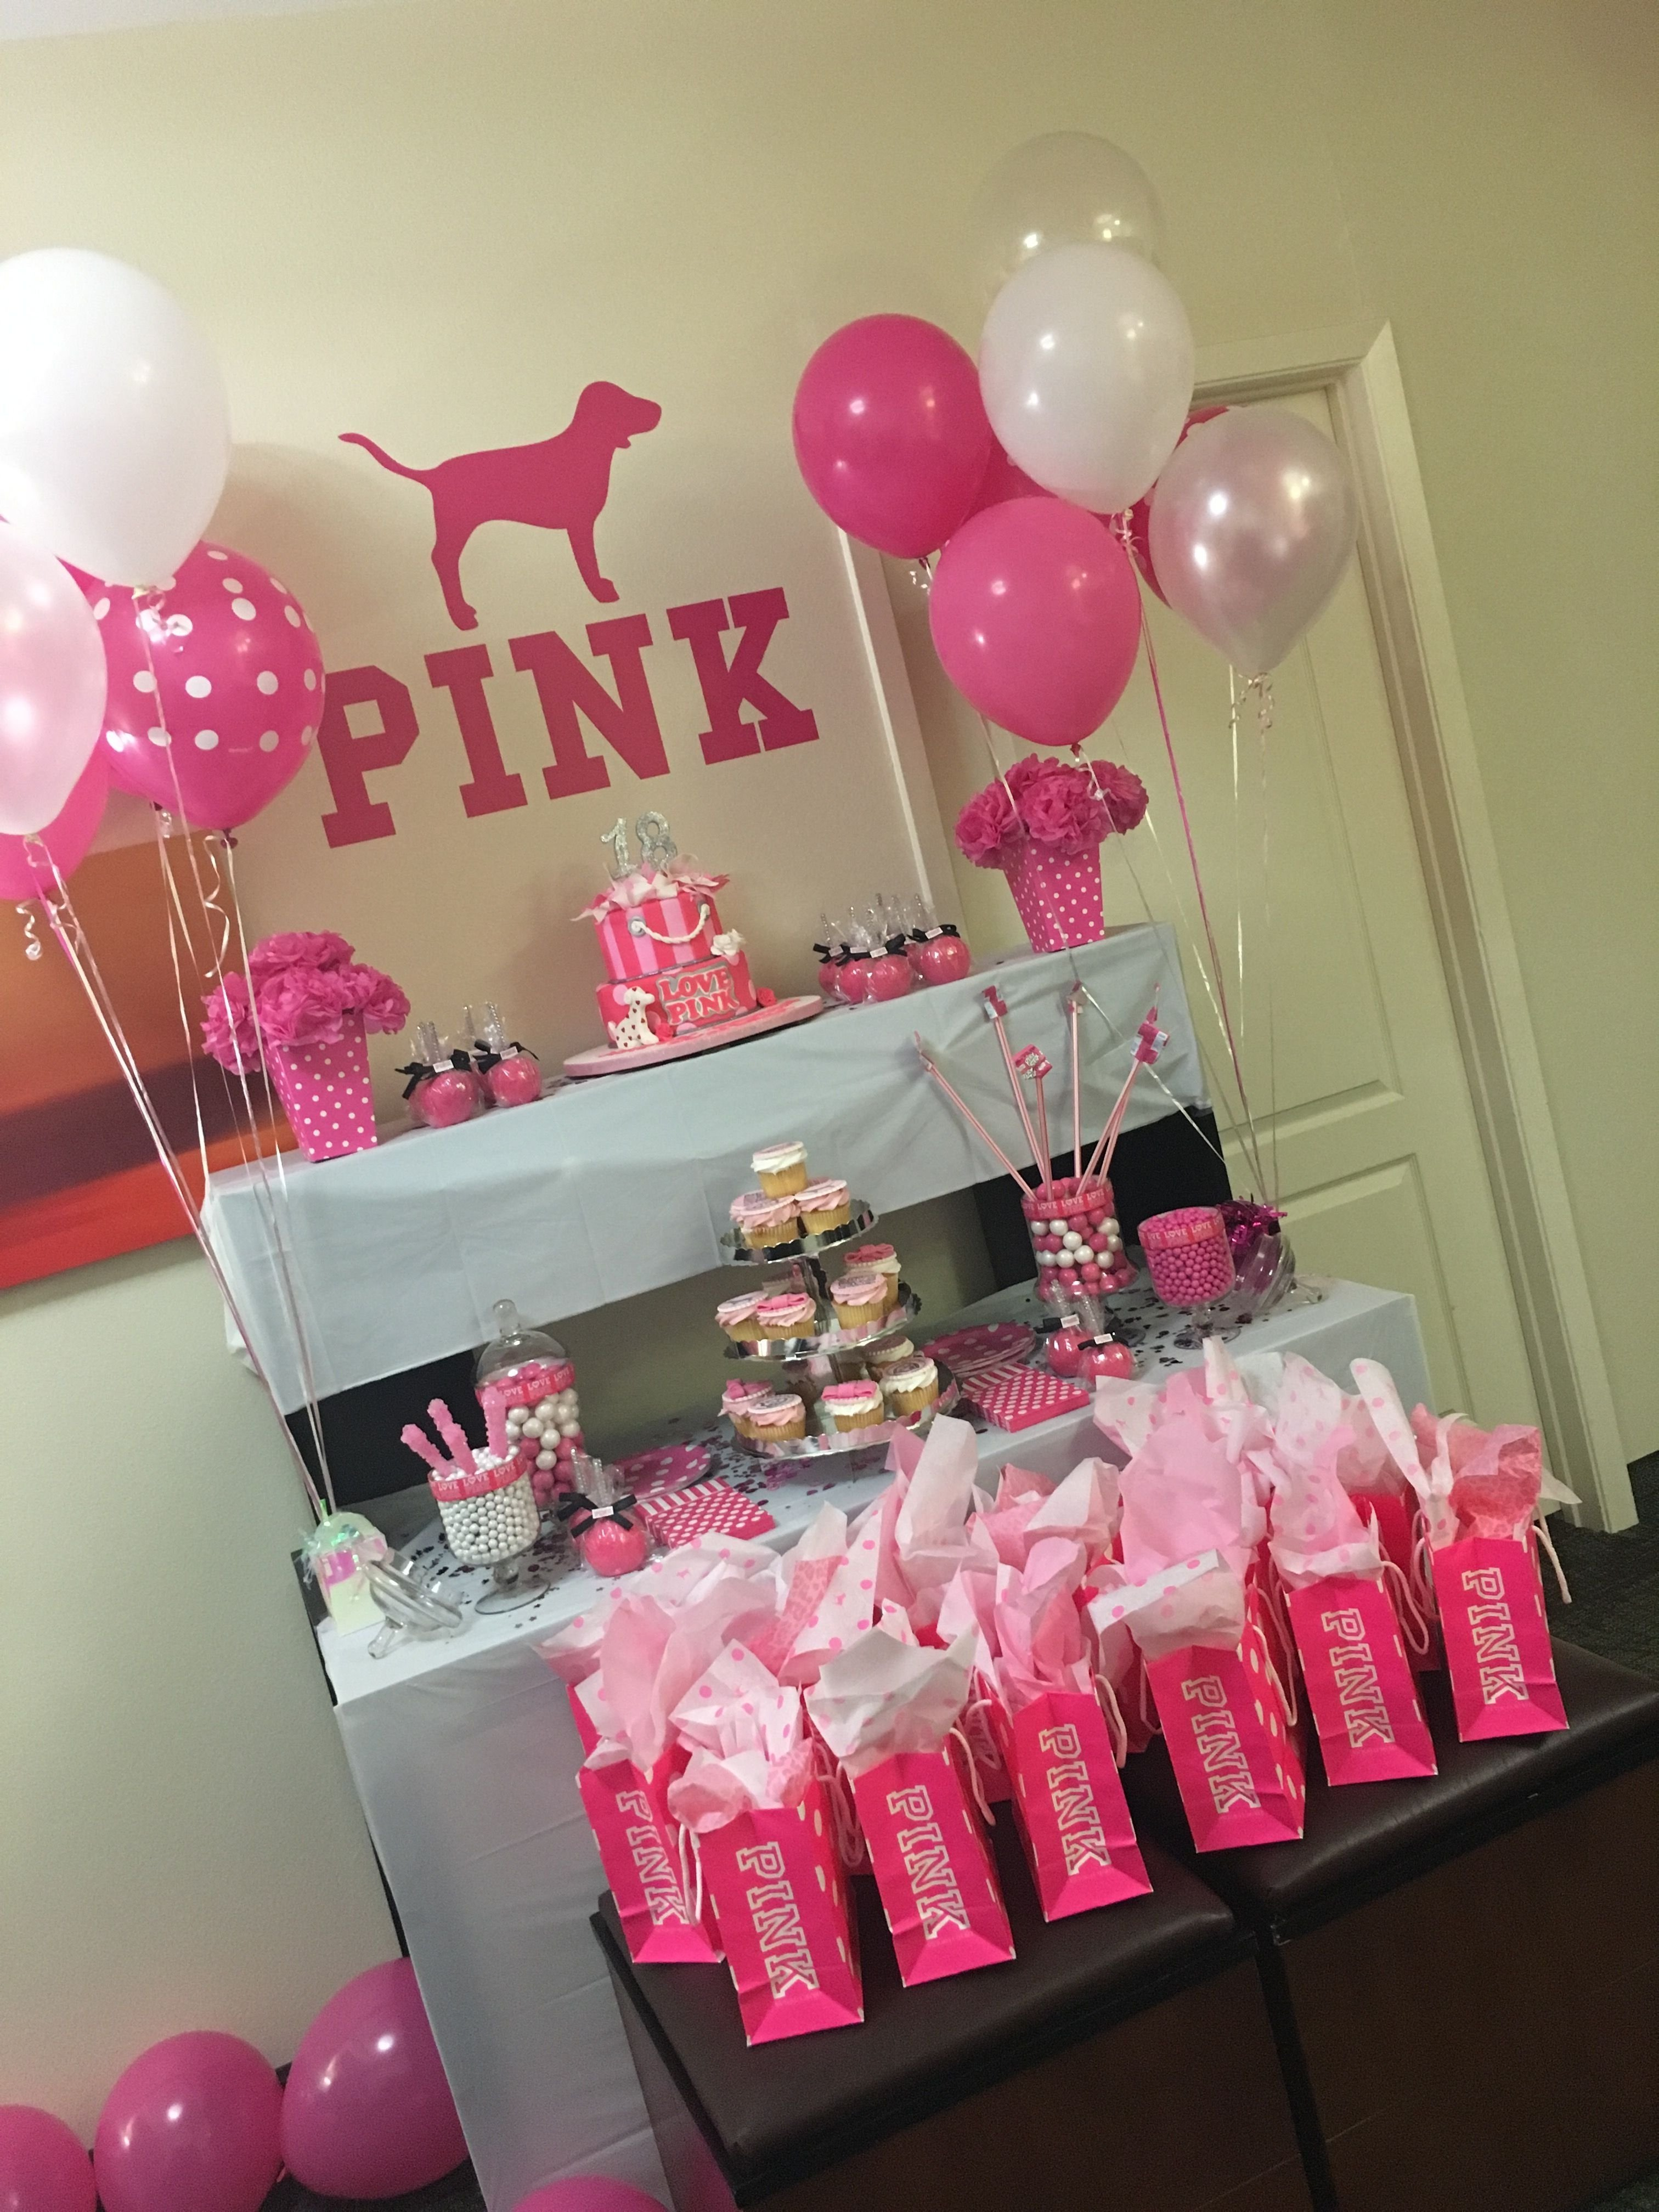 10 Fabulous 16Th Birthday Party Ideas For Girls pink party pinteres 4 2020